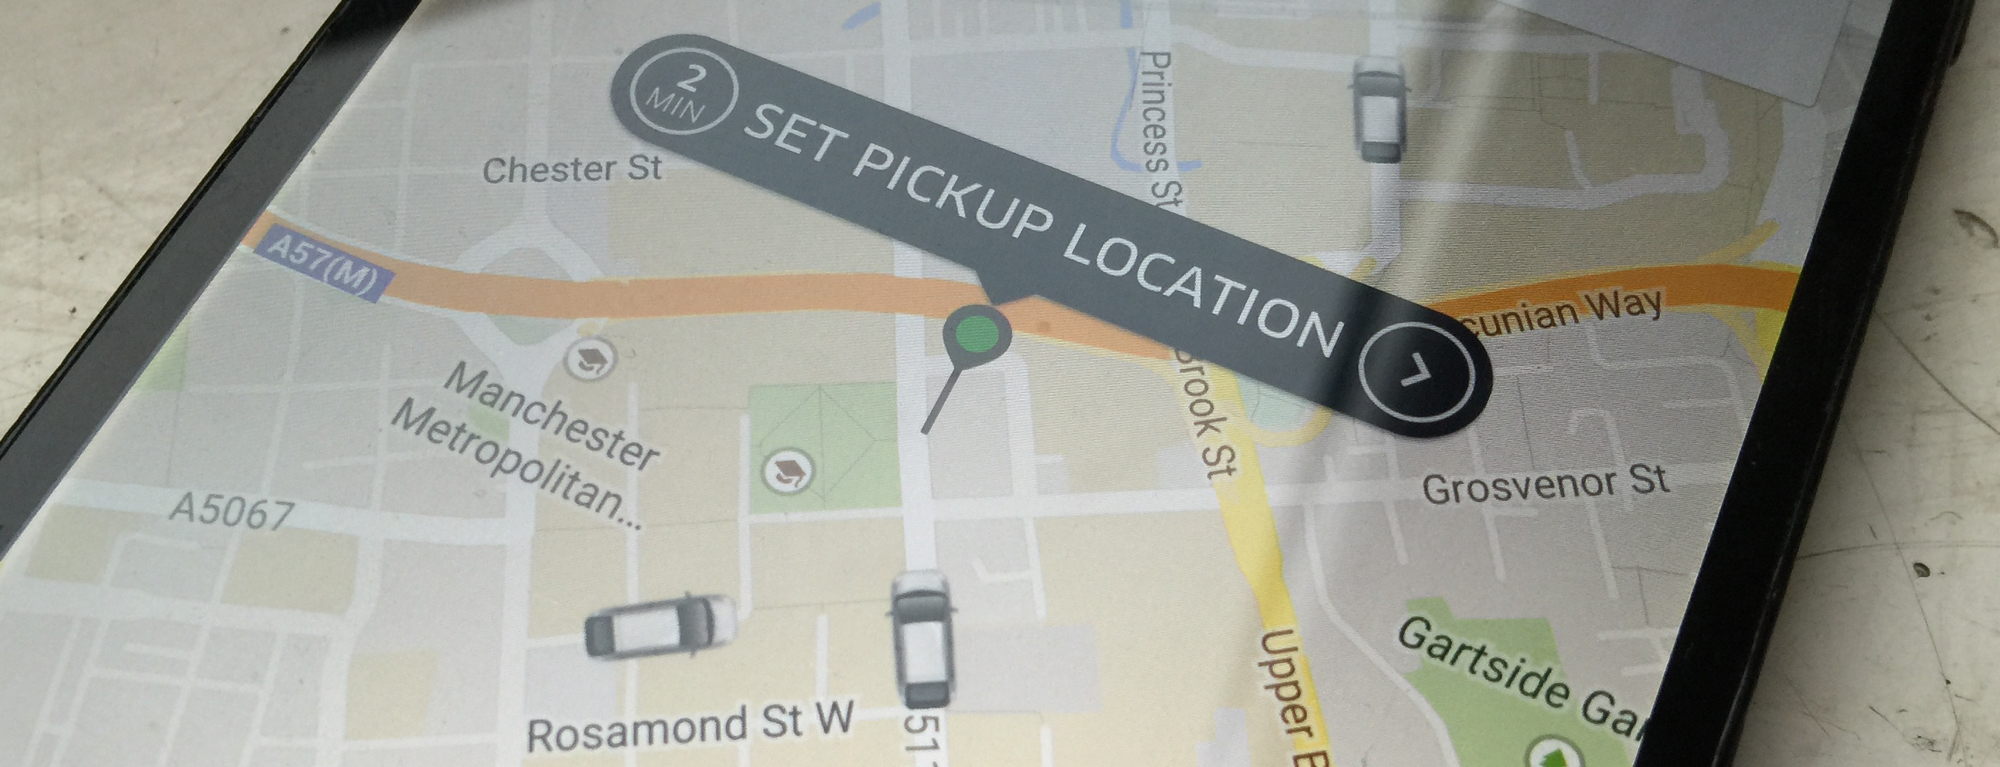 Uber's Android App is Not 'Literally Malware'